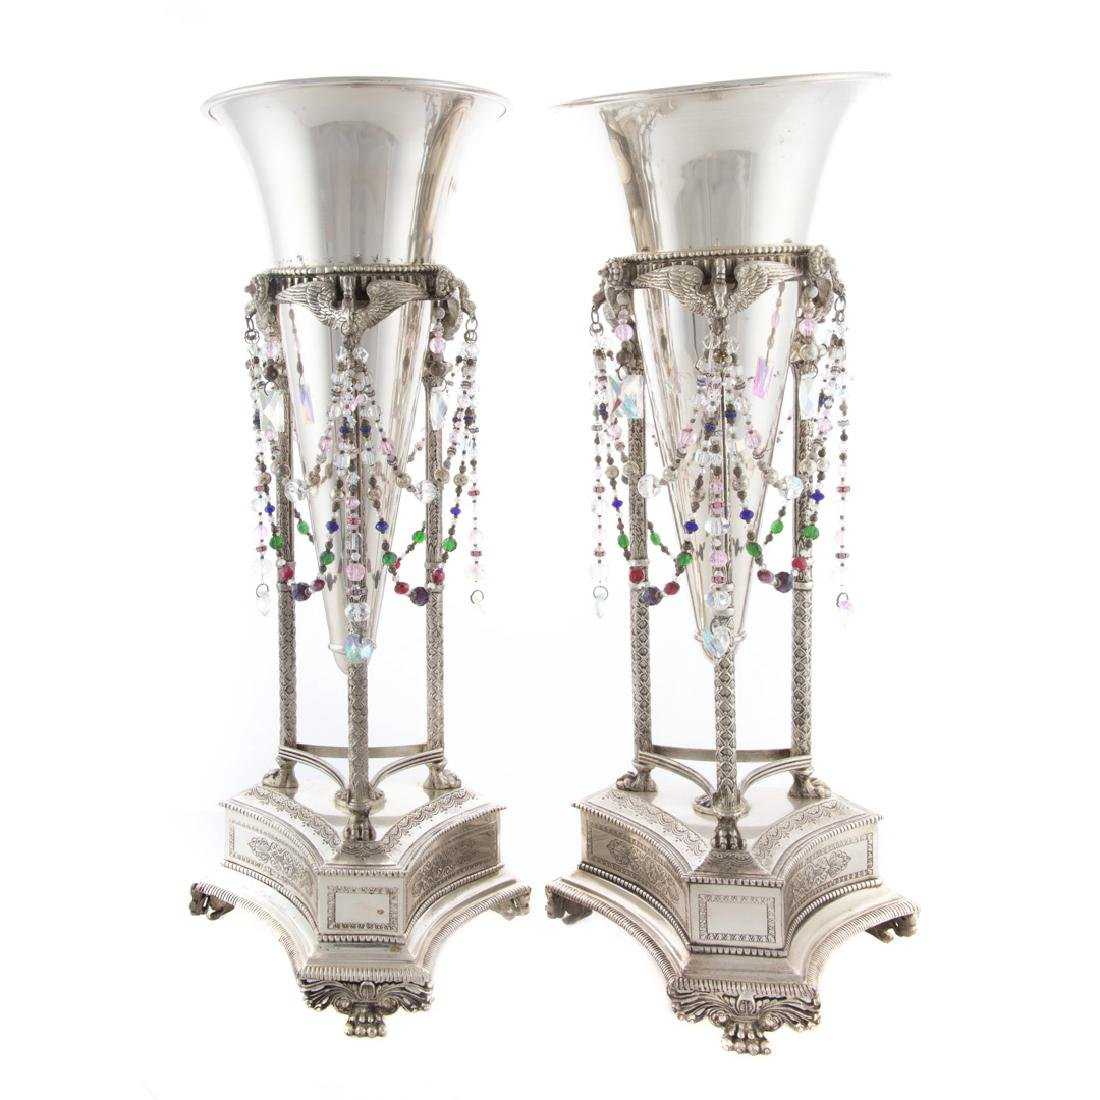 Pair Empire style silver plated trumpet vases